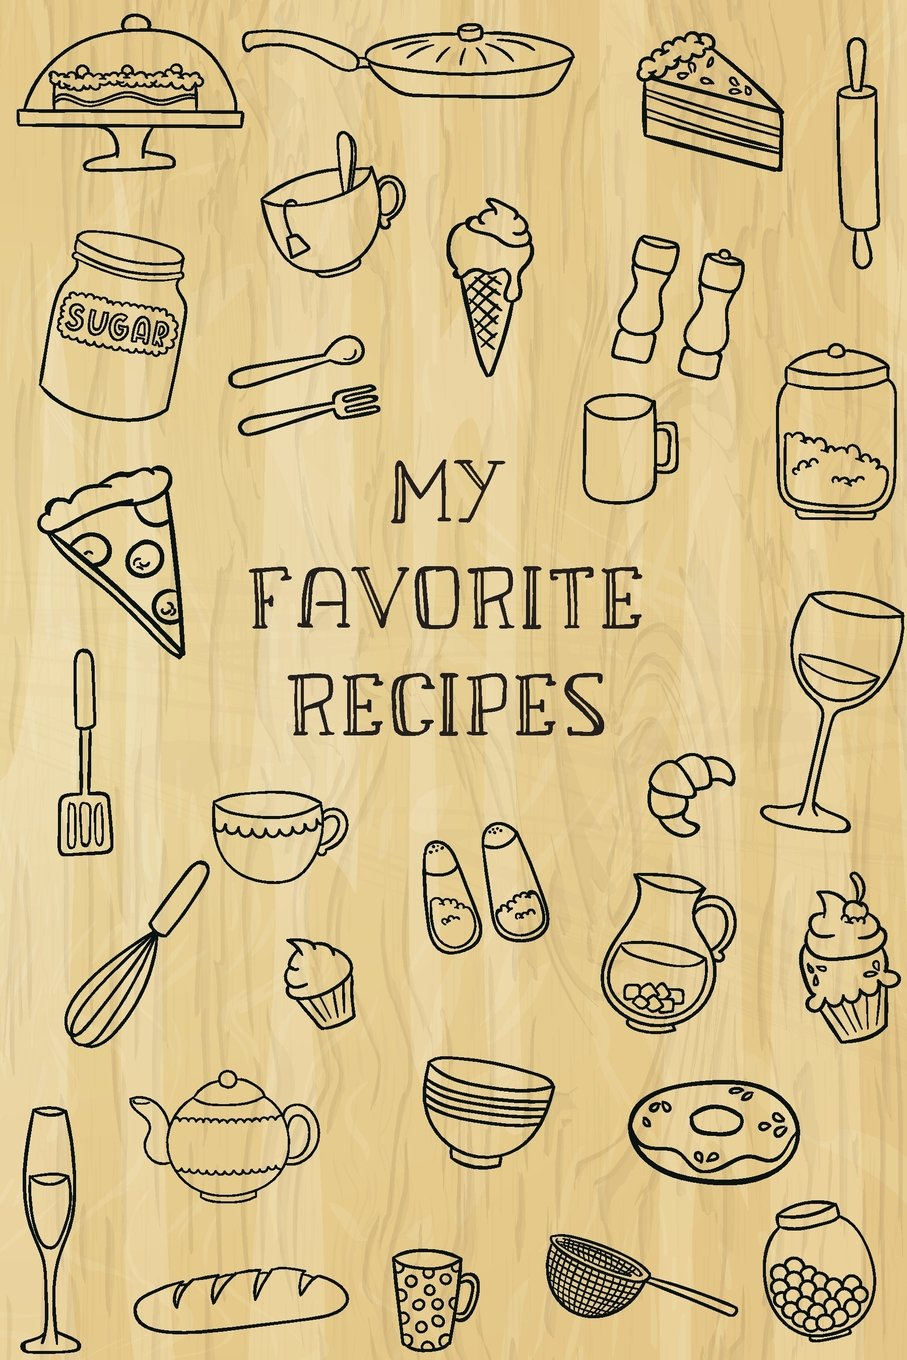 My Favorite Recipes: Custom Recipe Book, Family Cookbook, Blank Recipe Book, 100 Recipe Pages, Journal and Organizer, 6 X 9 INCHES (Volume 1) ((Custom Recipe Book) (Volume 1)) ebook